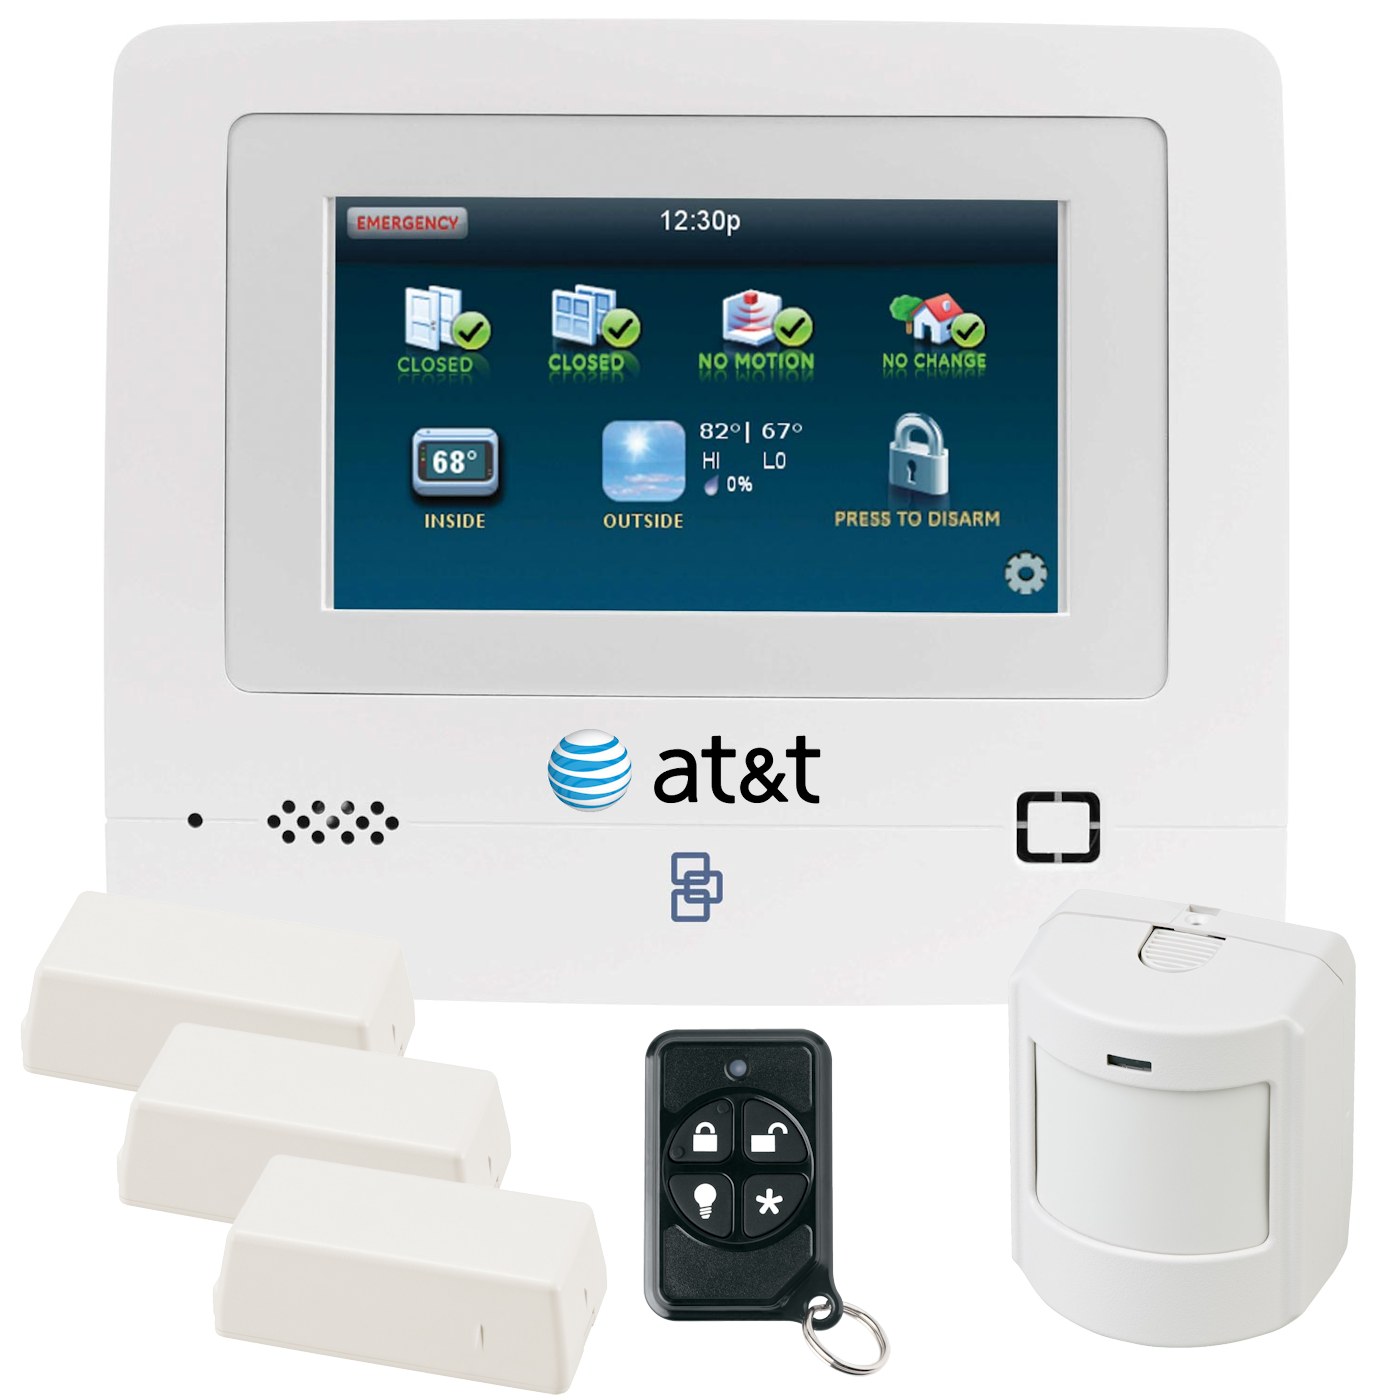 Interlogix Simon Xti 5 Cellular 3g Wireless Security System For Basic Structured Wiring Installation Adjacent To Panel Att Network